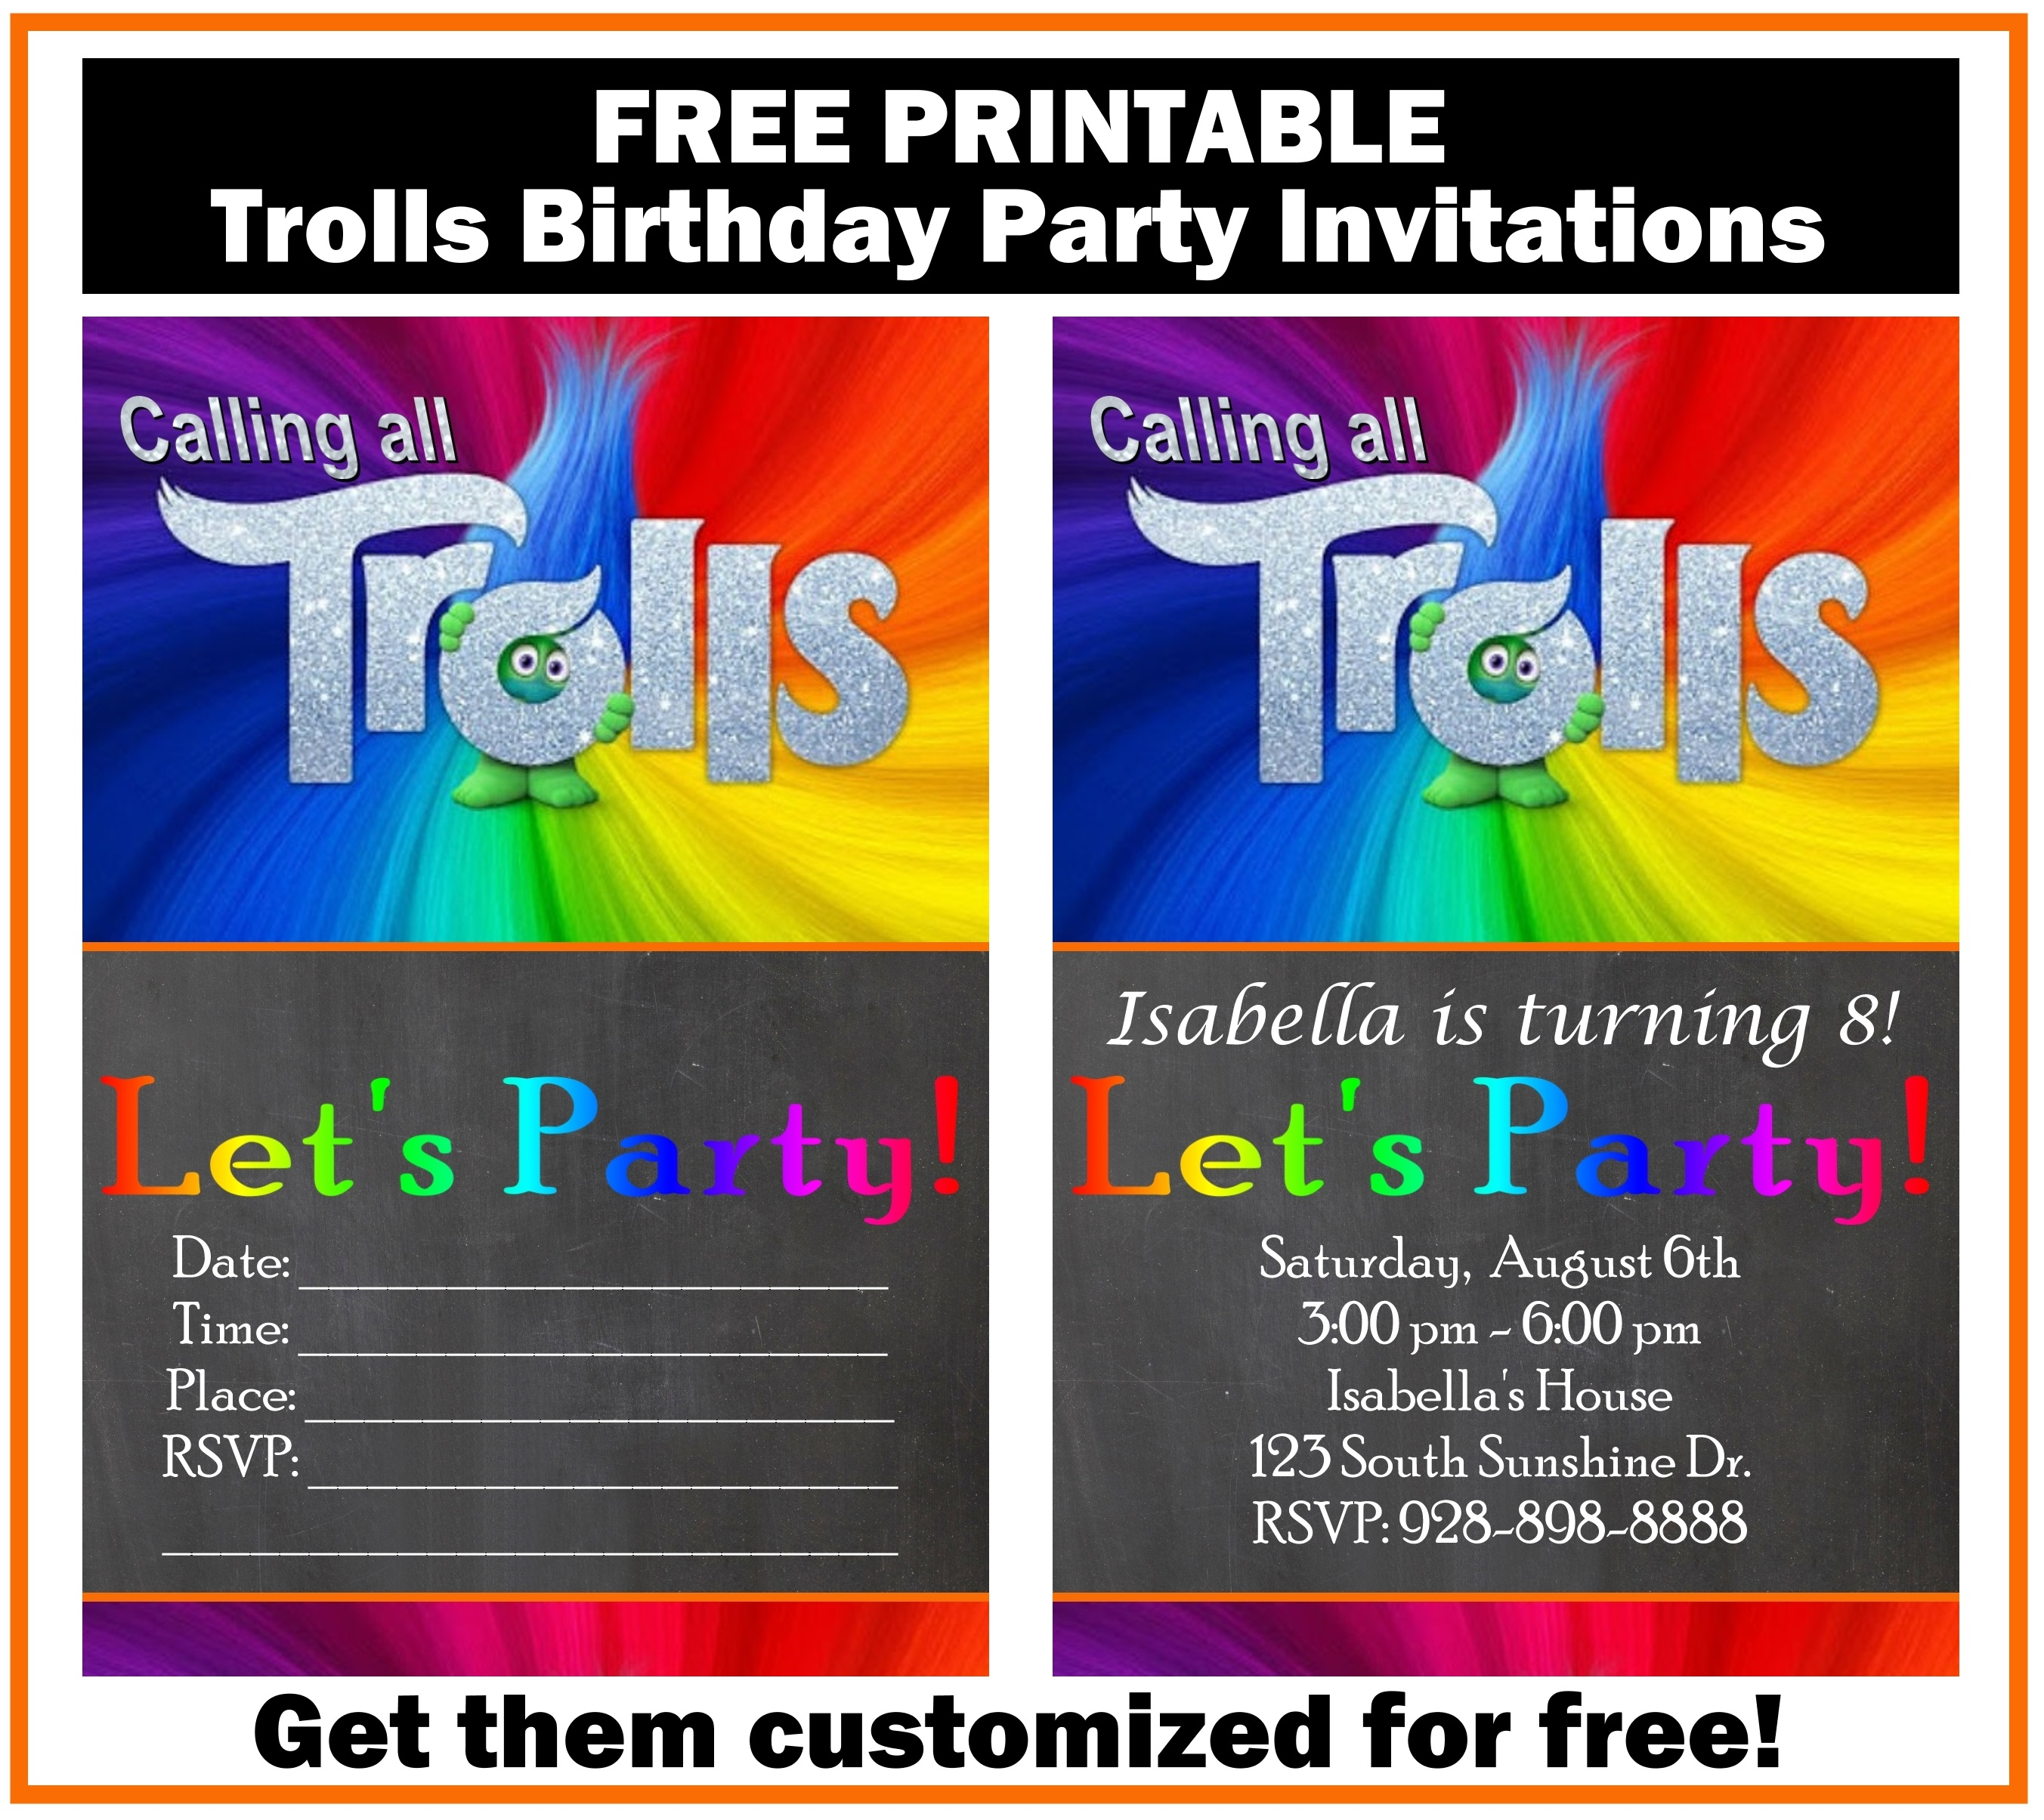 Superb image for trolls birthday invitations printable